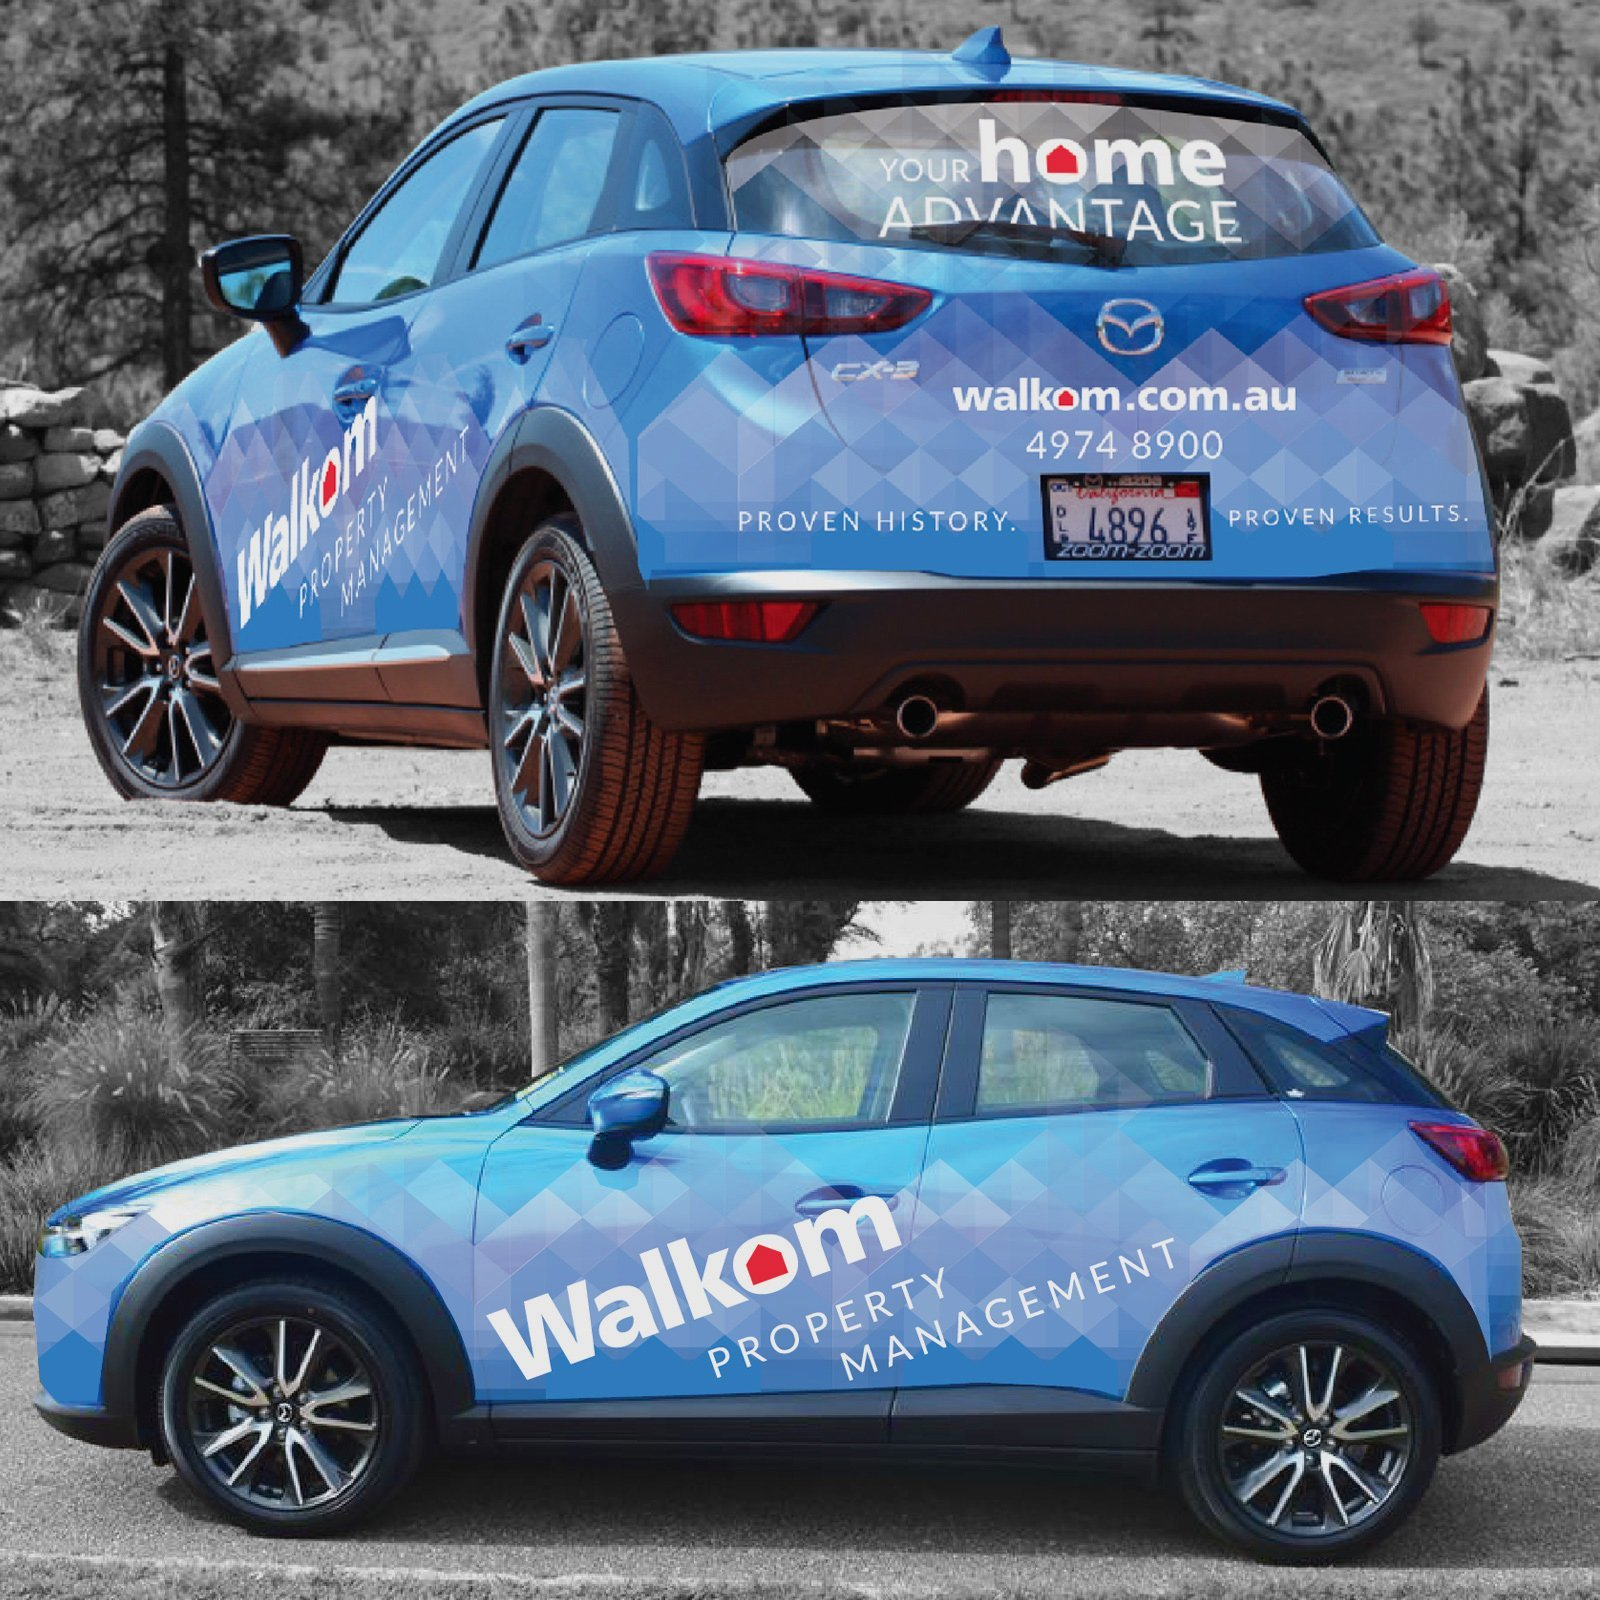 Walkom Real Estate Vehicle Wrap